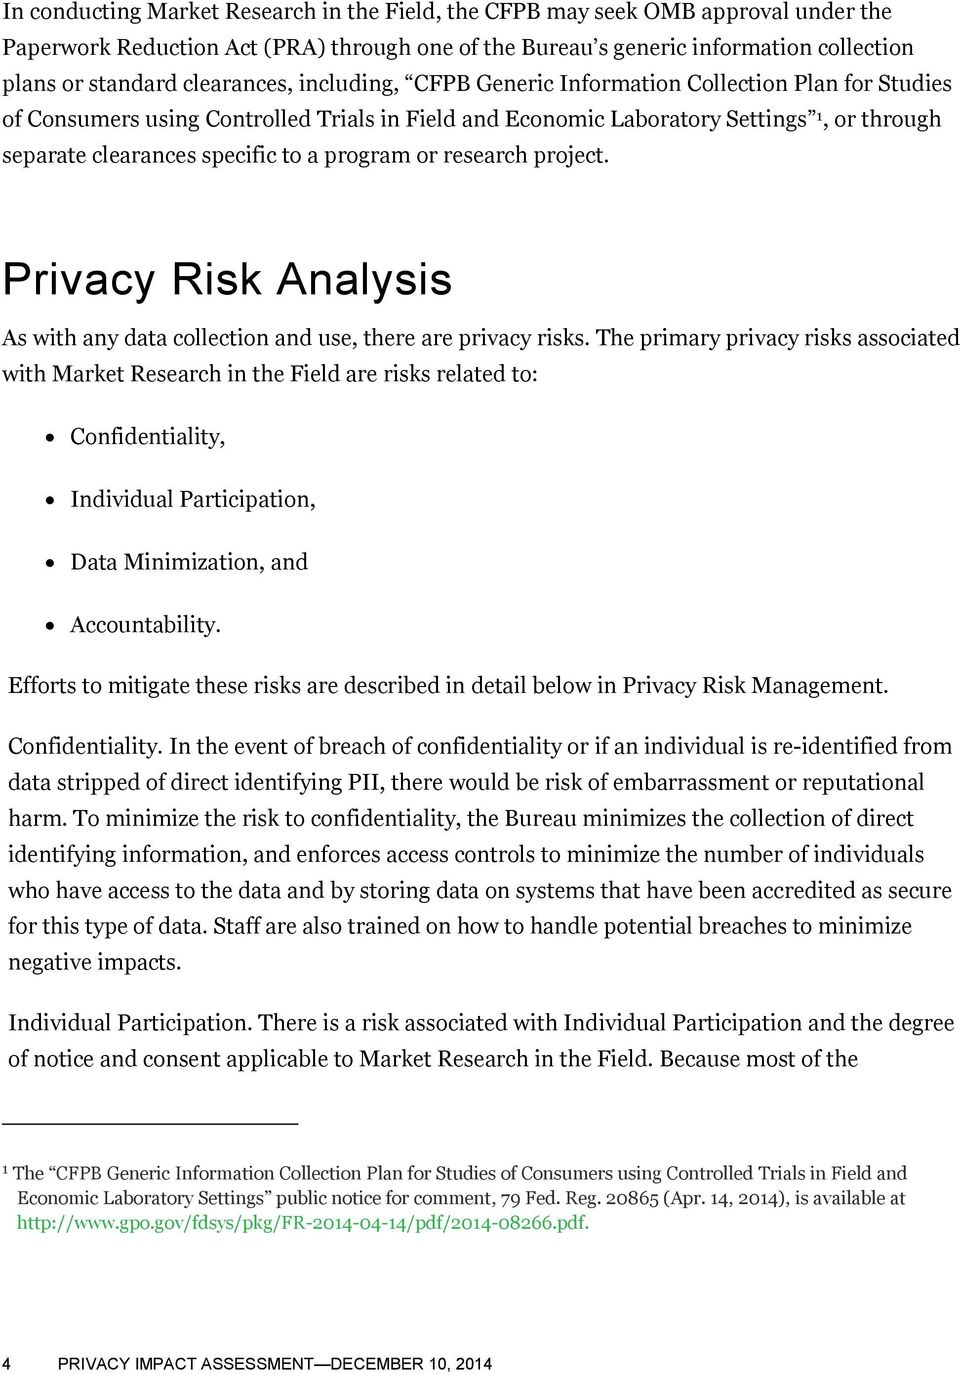 to a program or research project. Privacy Risk Analysis As with any data collection and use, there are privacy risks.